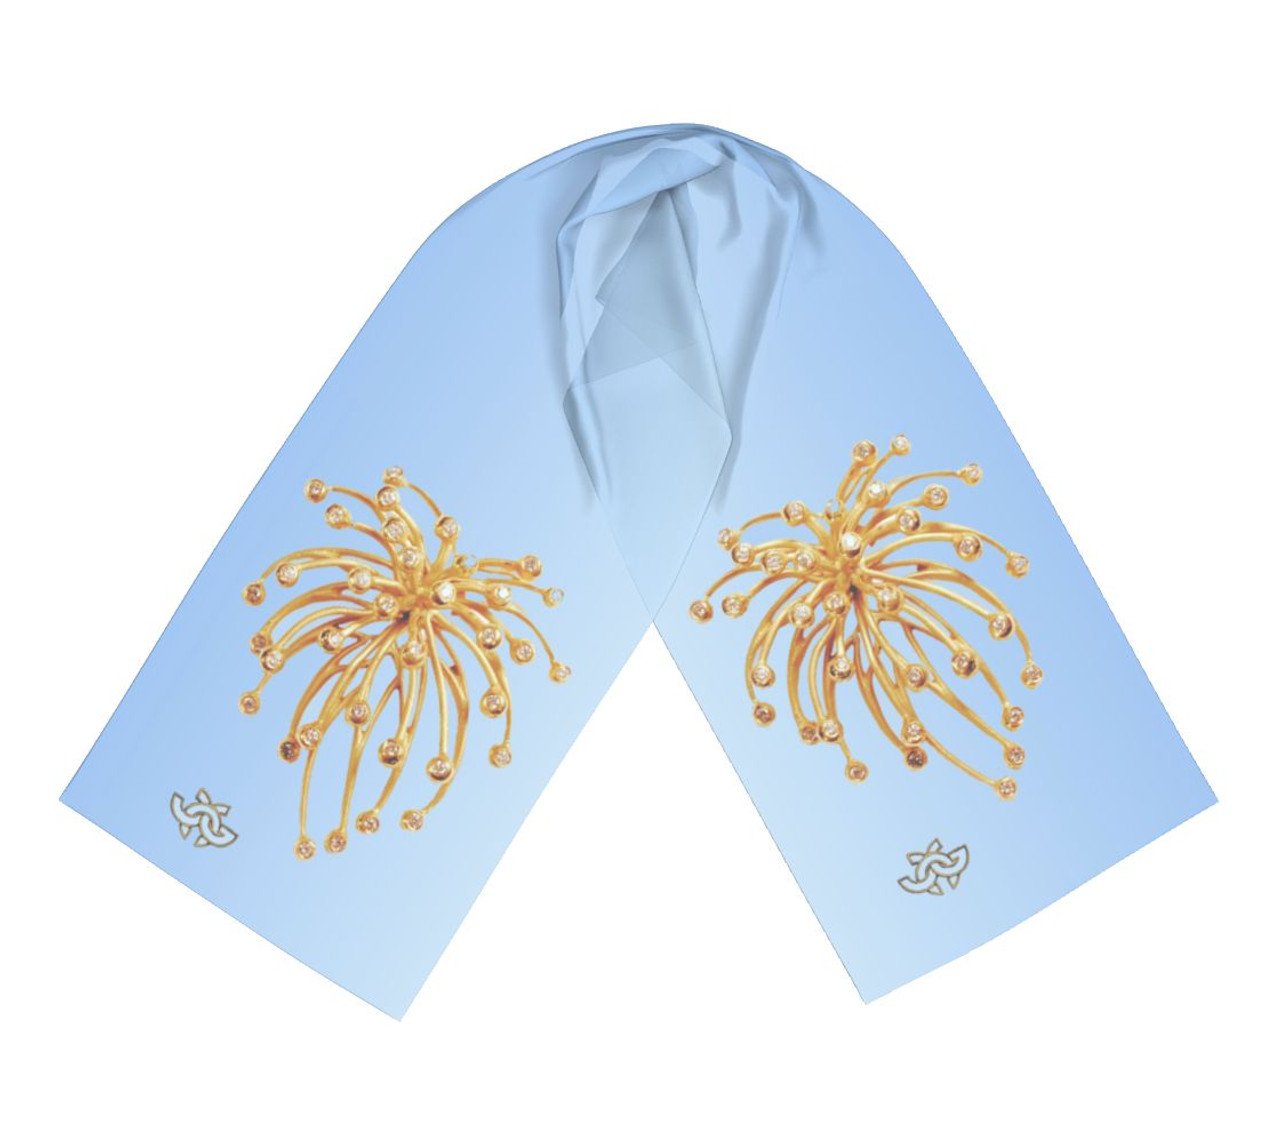 Fireworks scarf- gold and diamonds on sky blue